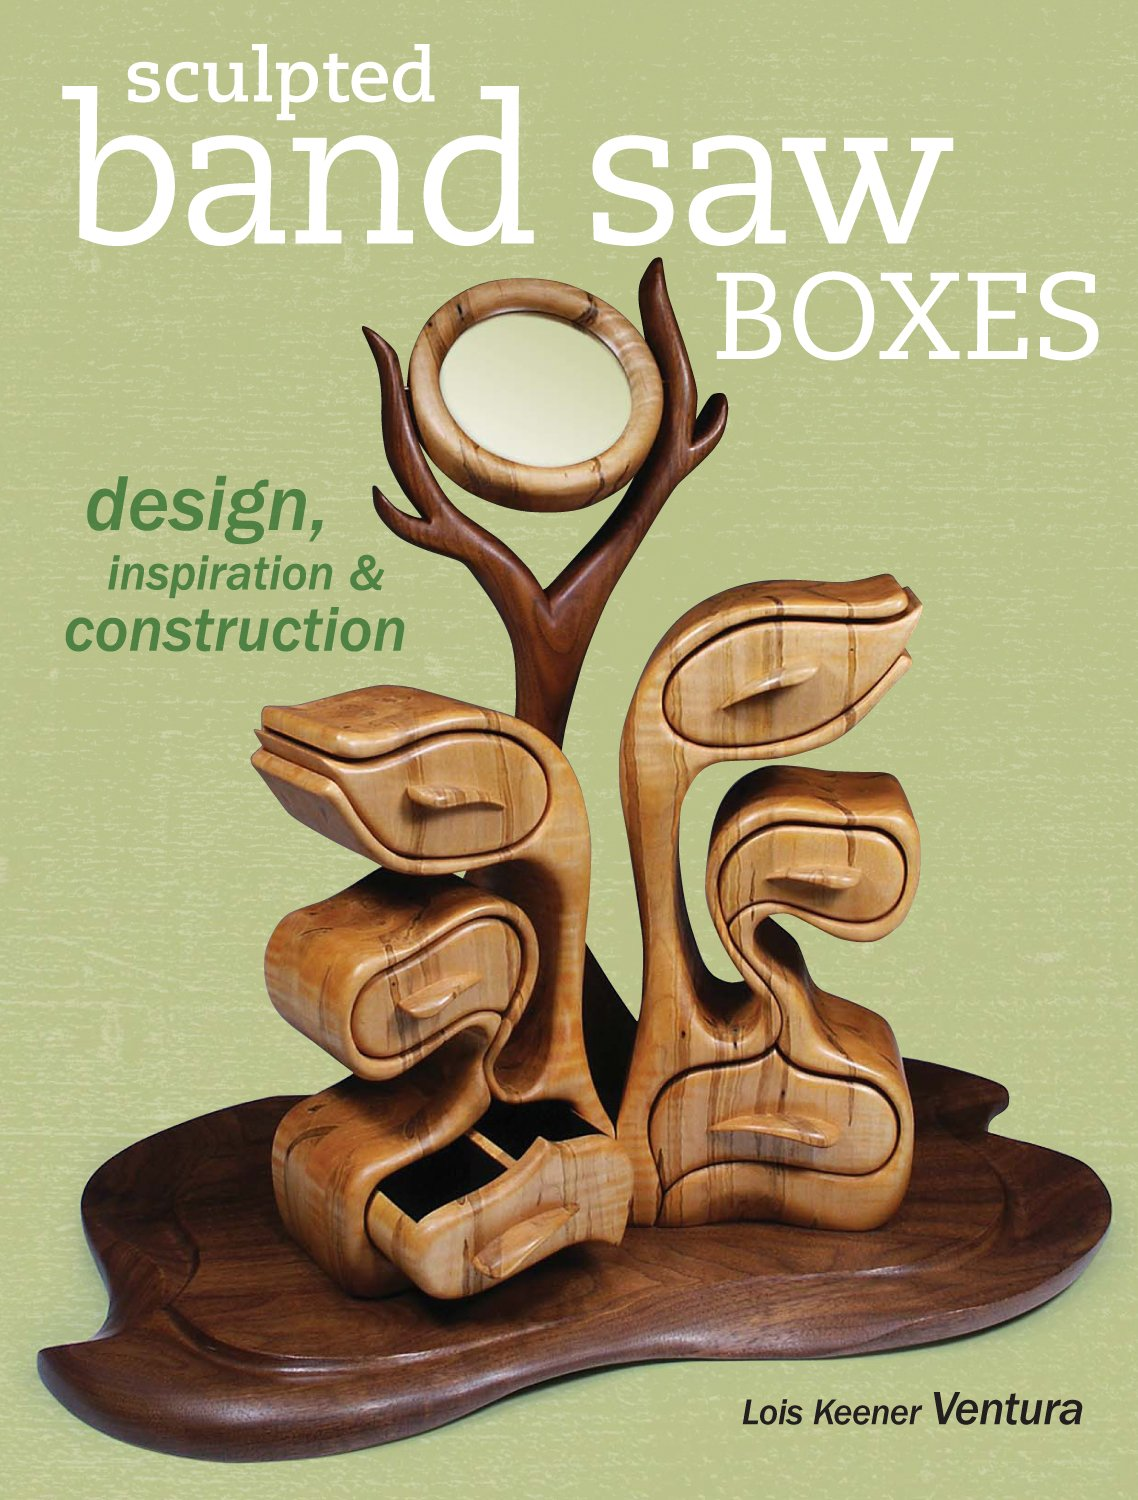 Amazon Com Sculpted Band Saw Boxes Design Inspiration Construction Popular Woodworking Ebook Ventura Lois Kindle Store